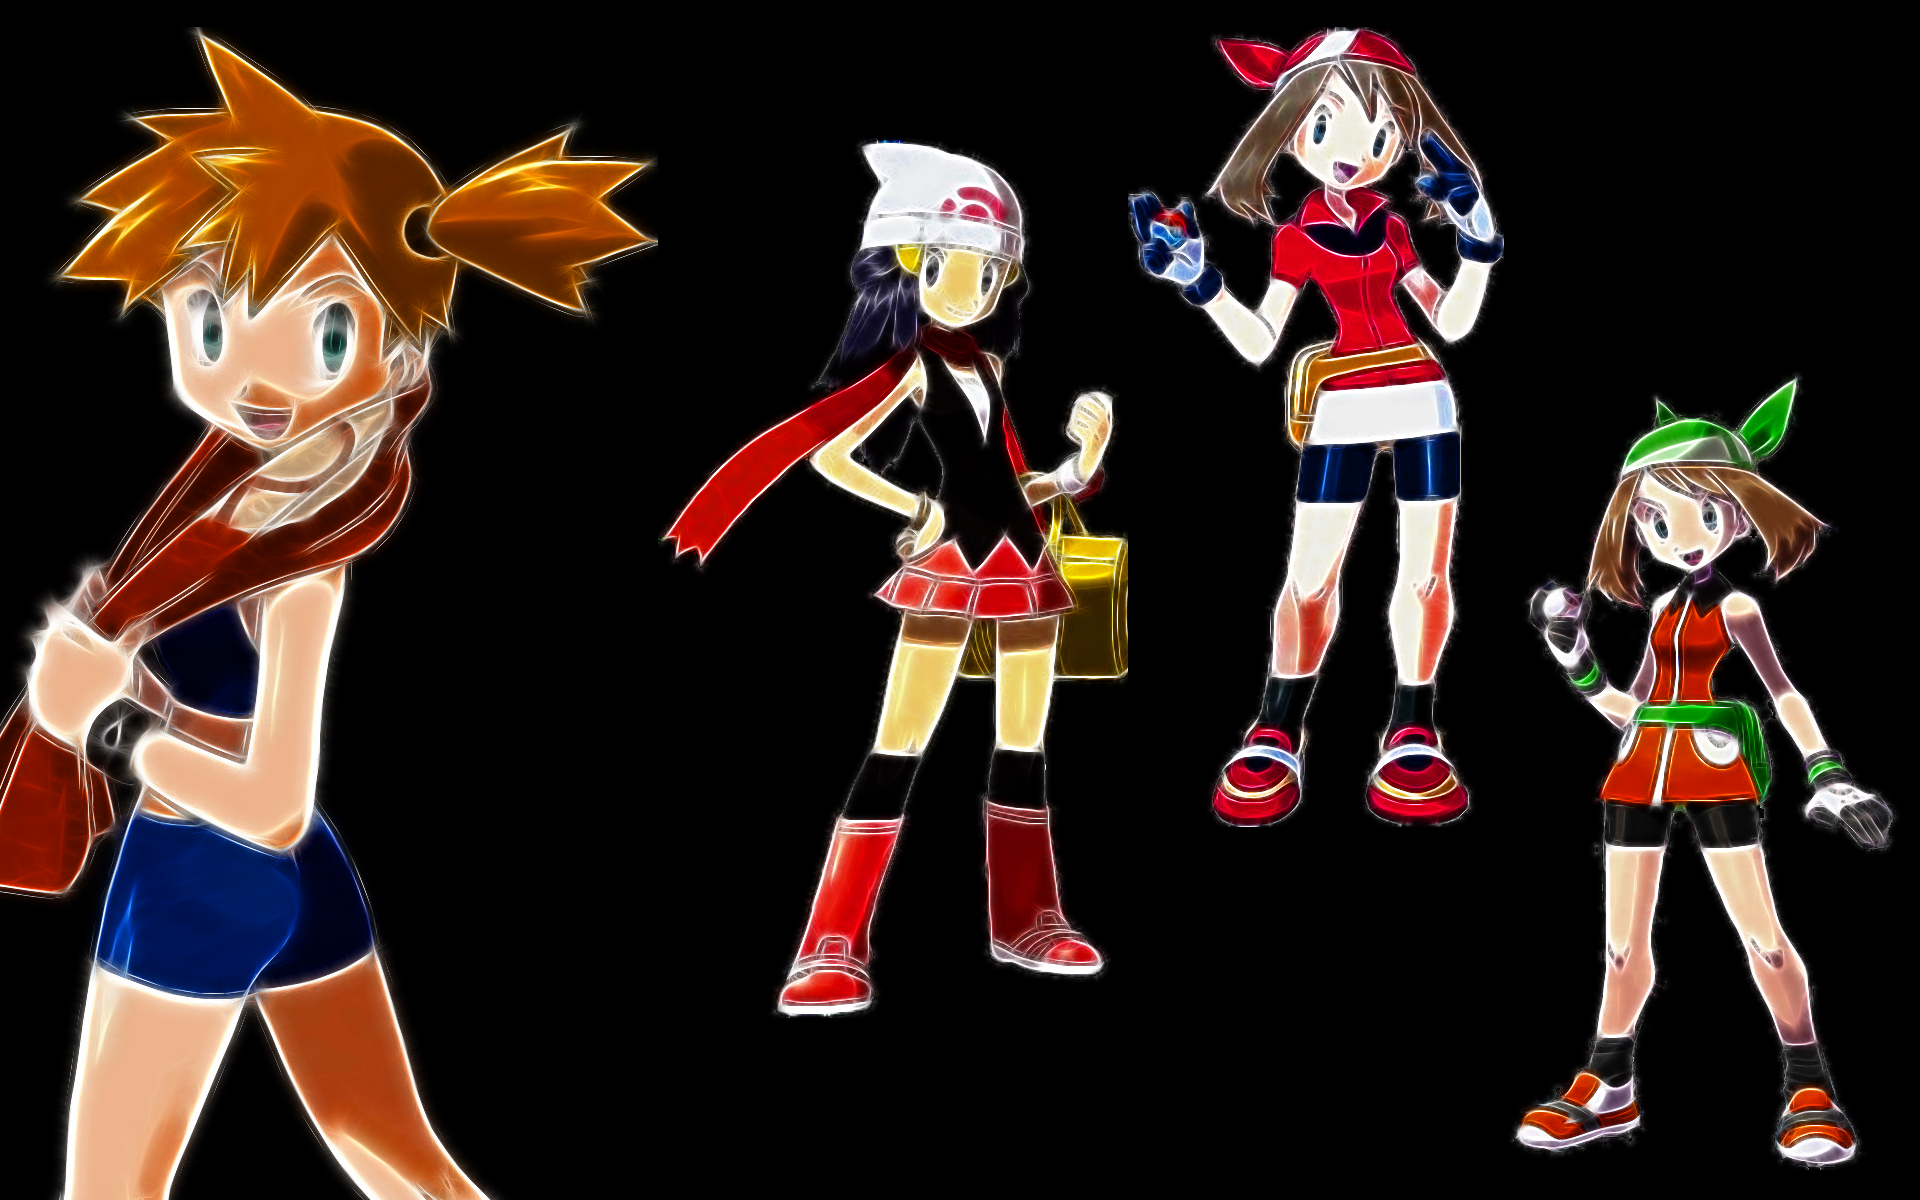 Pokemon misty ash ketchum HD Wallpaper